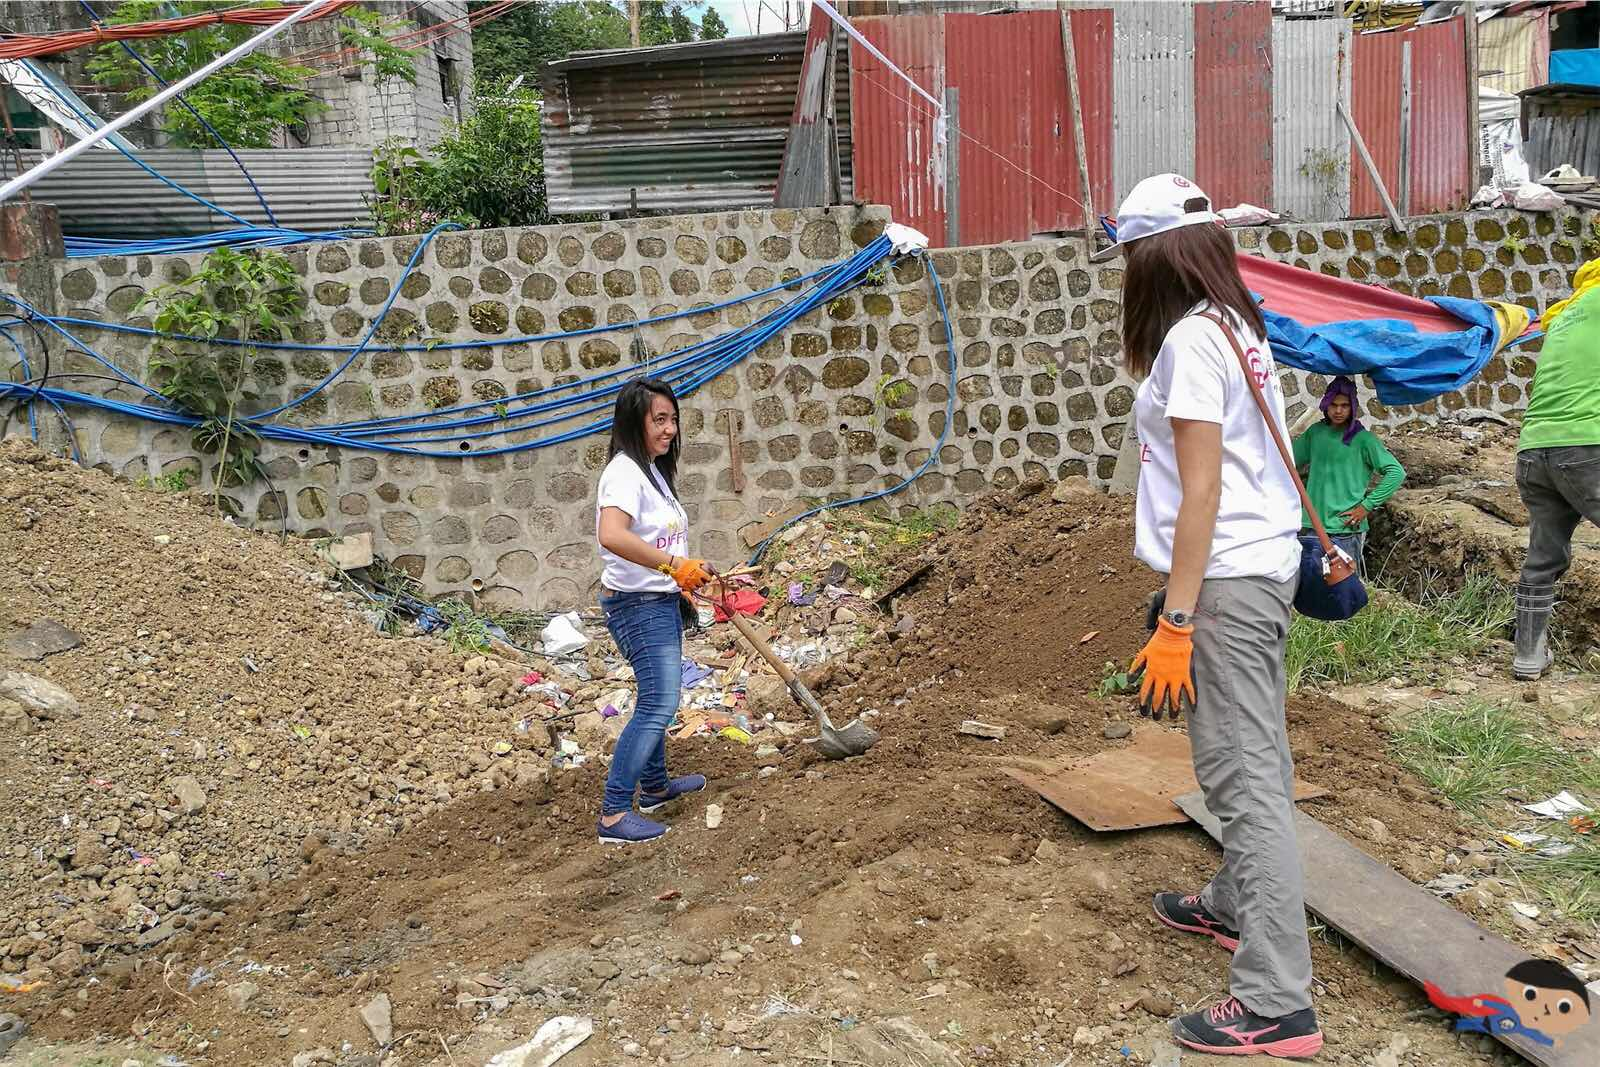 Volunteering activity in Gawad Kalinga Munting Pamayanan